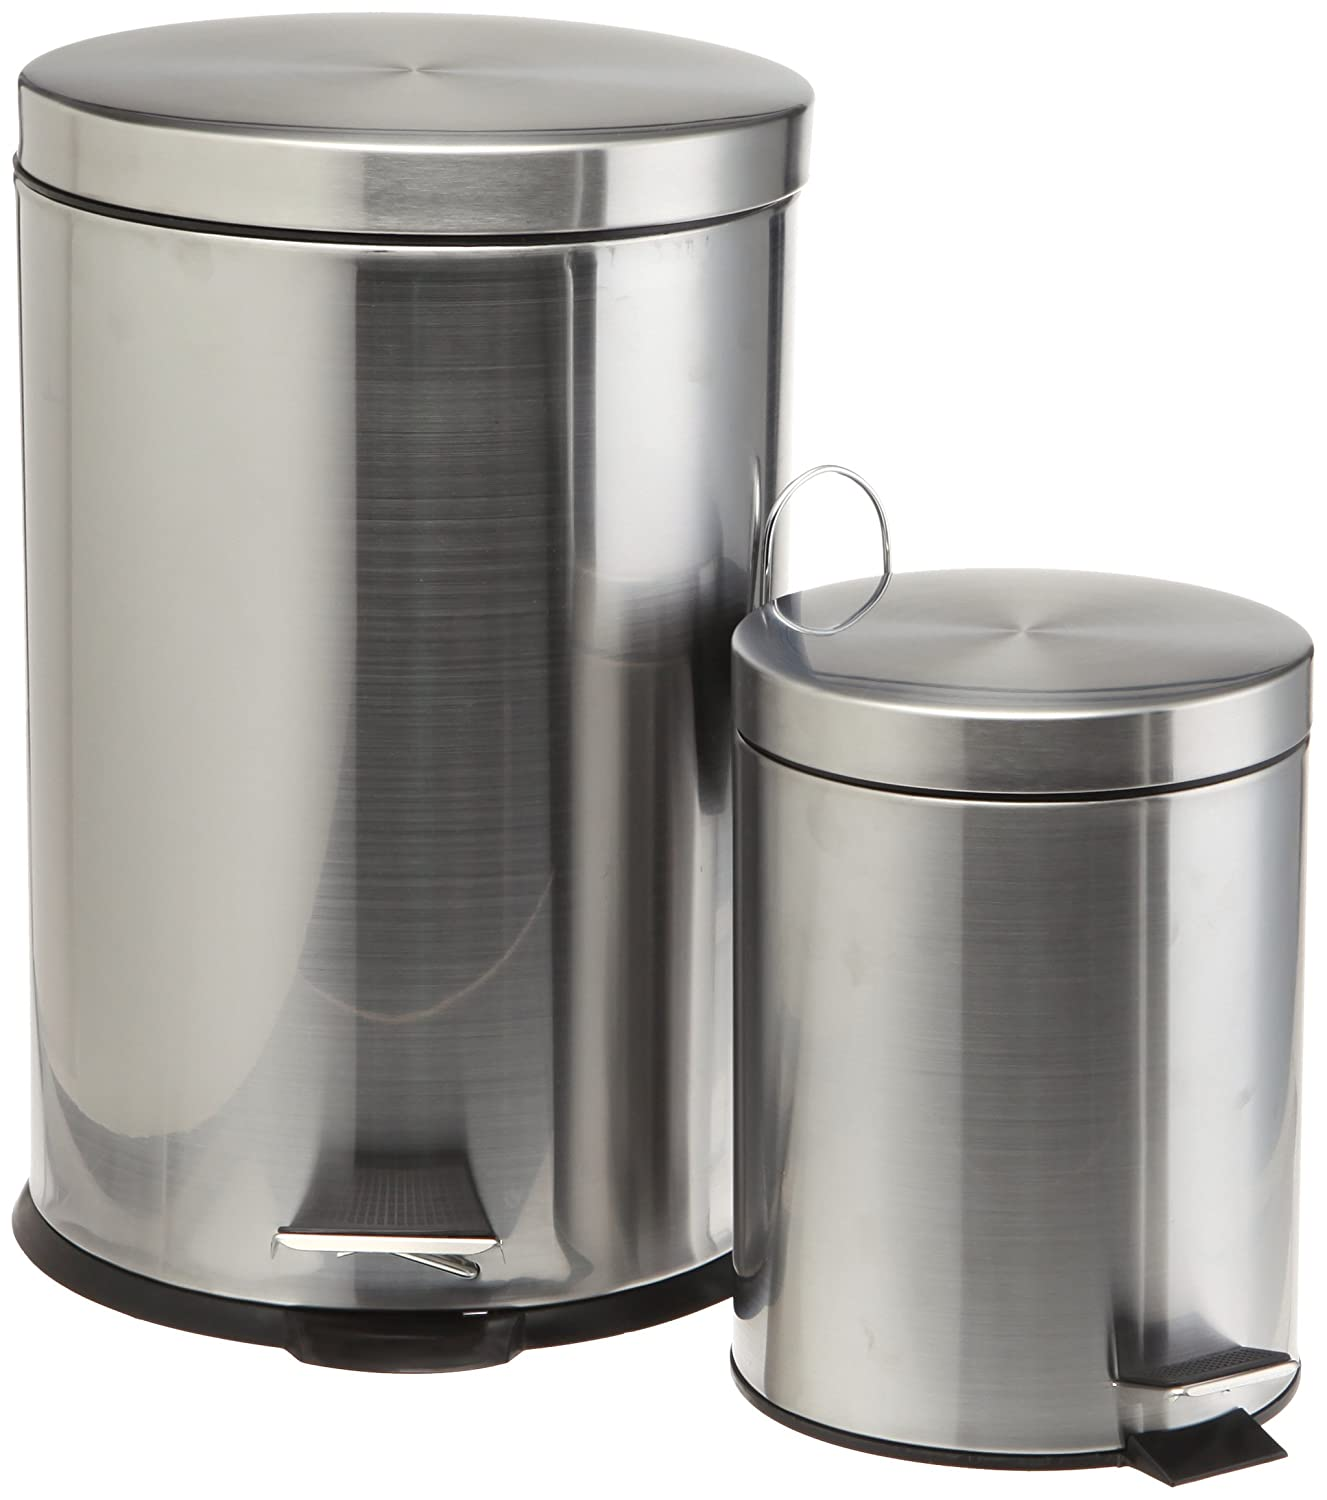 Stainless Steel Kitchen Trash Cans: Prime Pacific Pro Cook Stainless Steel Trash Cans, Set Of